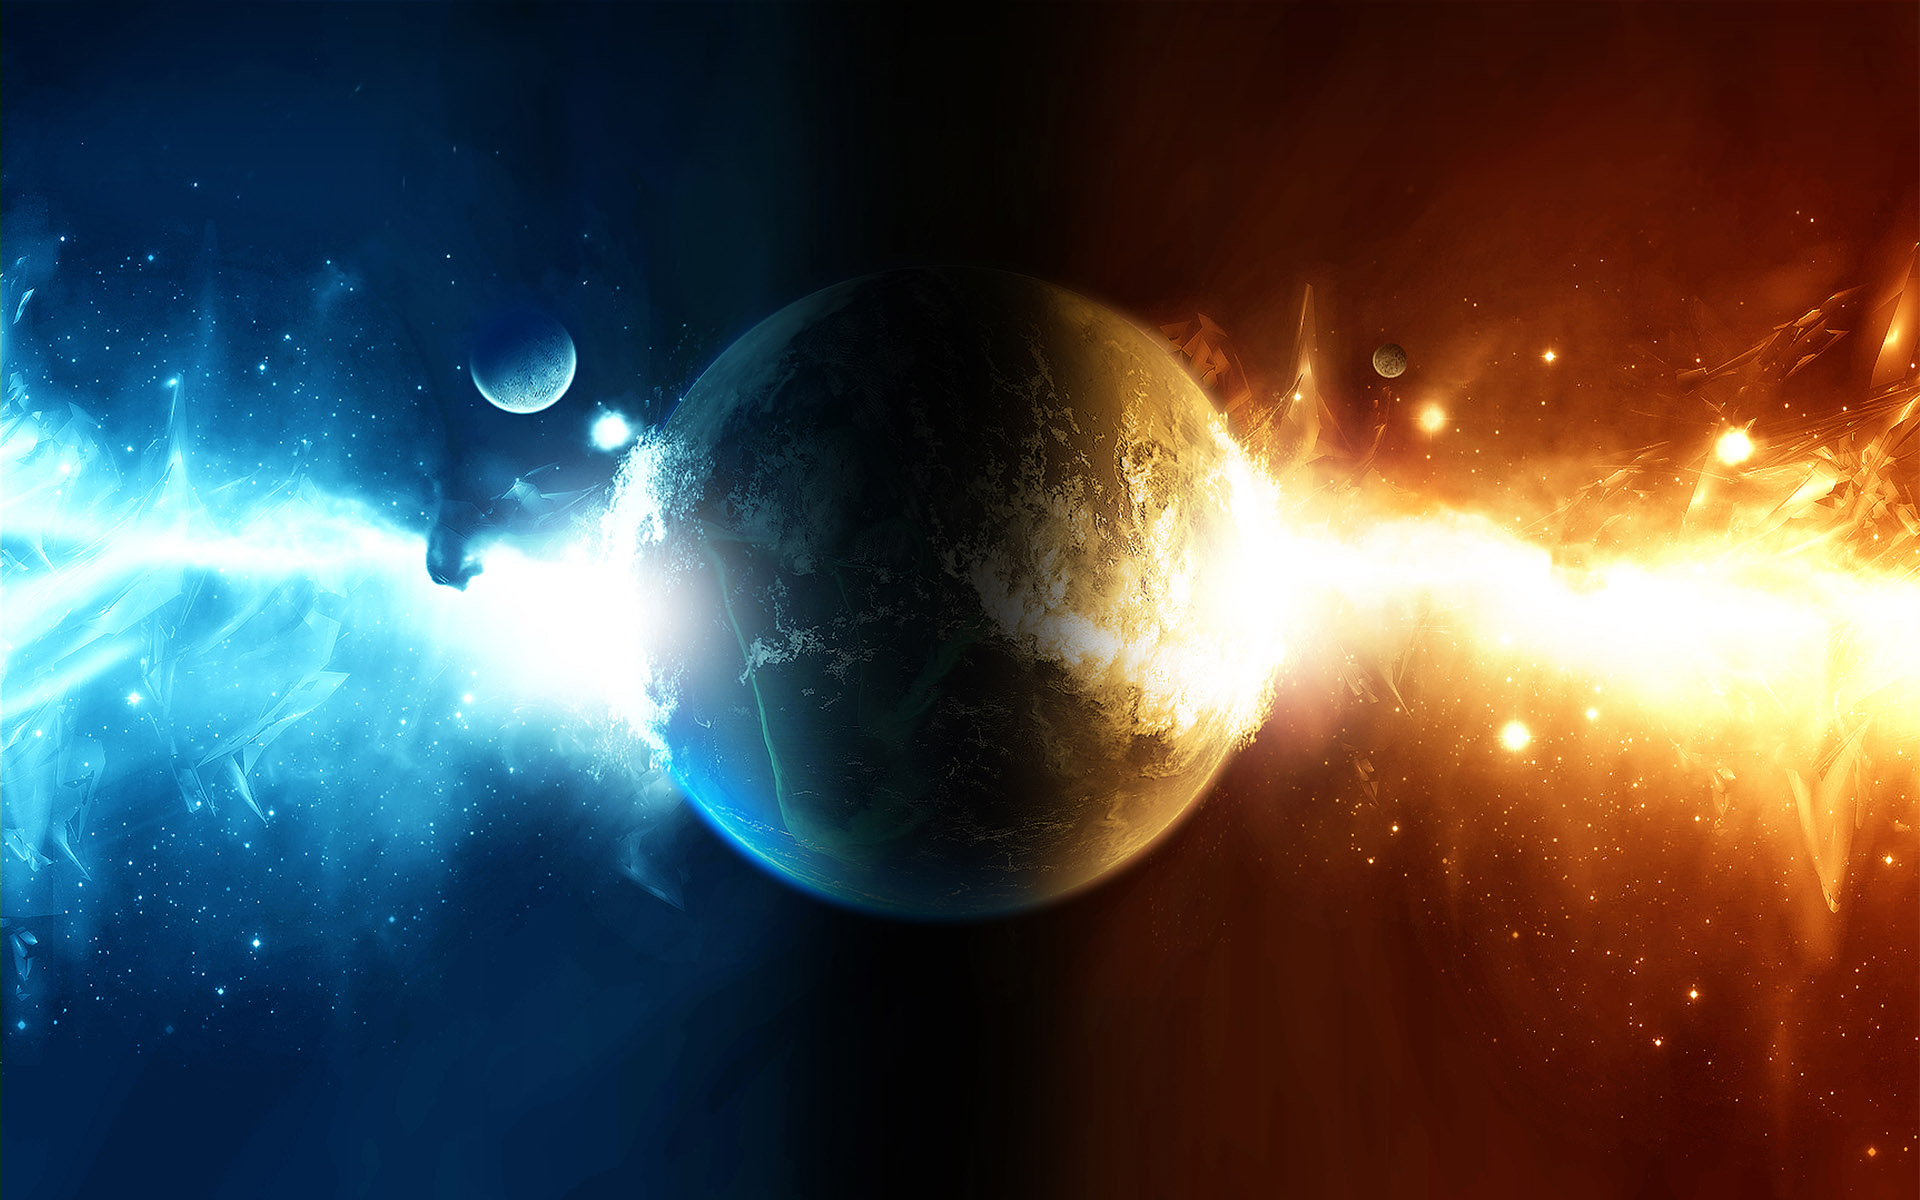 IMAGE(http://coolvibe.com/wp-content/uploads/2011/02/fire_water_planet.jpg)